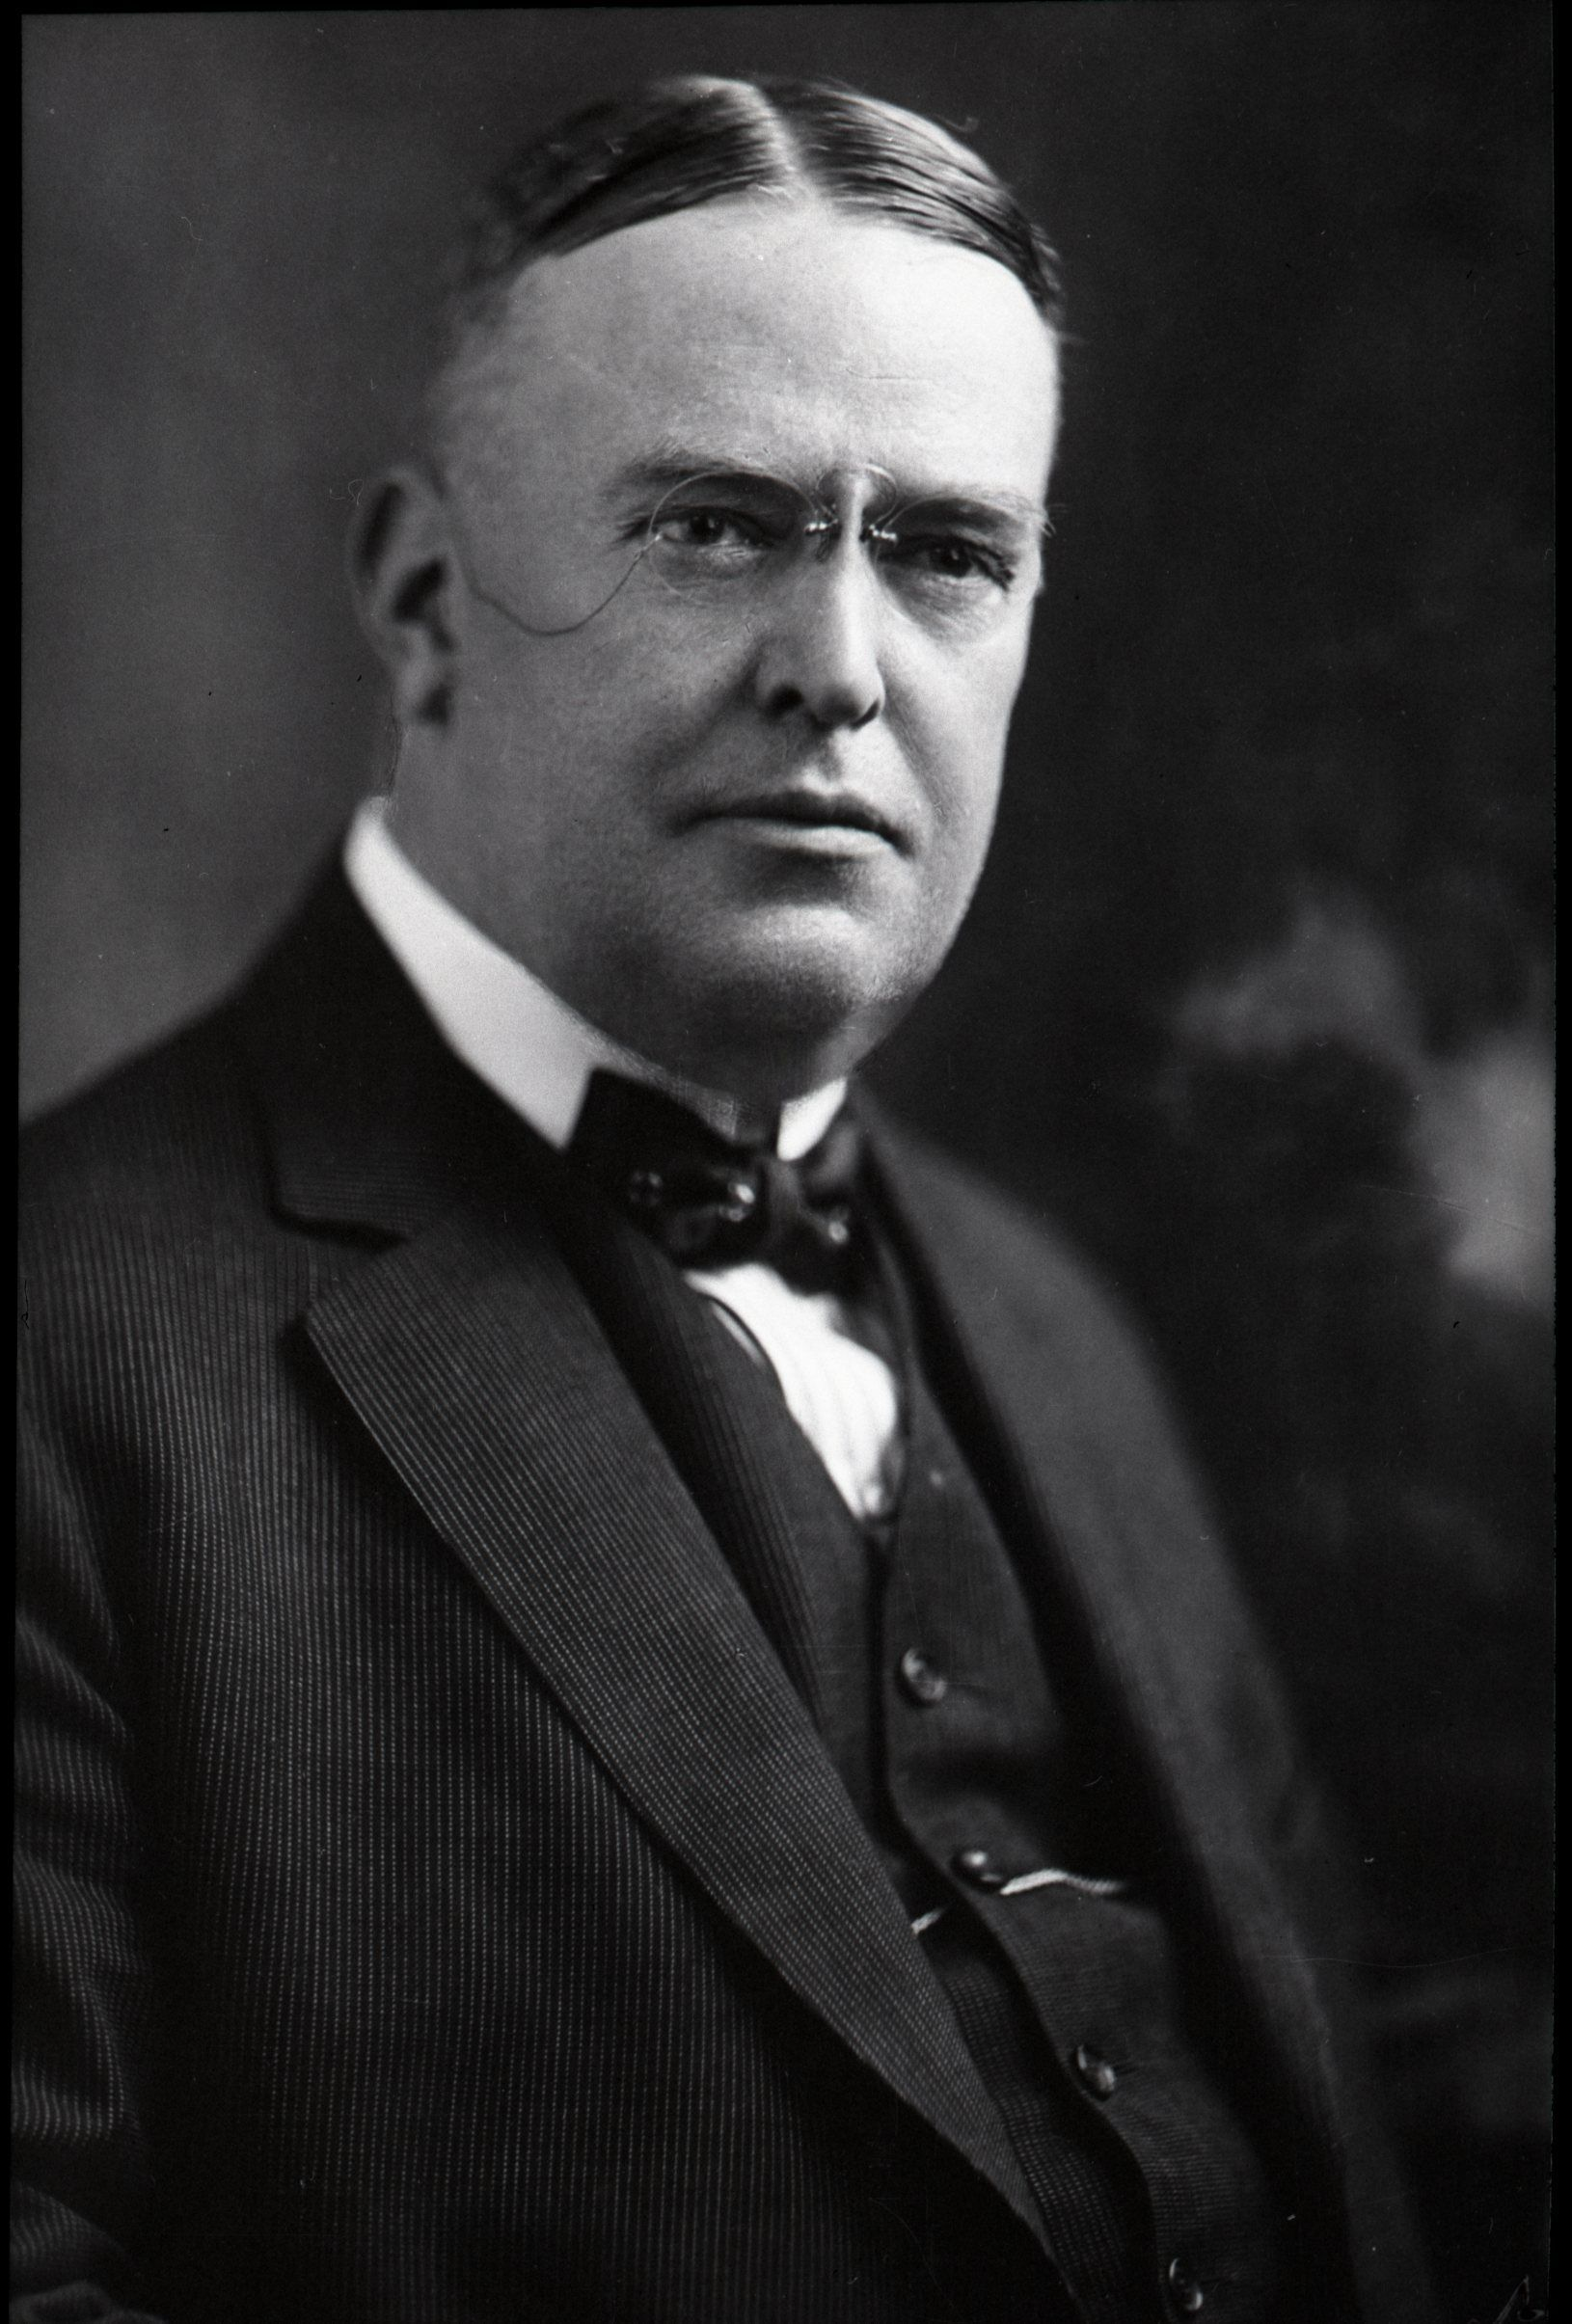 Ban Johnson, founder of the MLB's American League